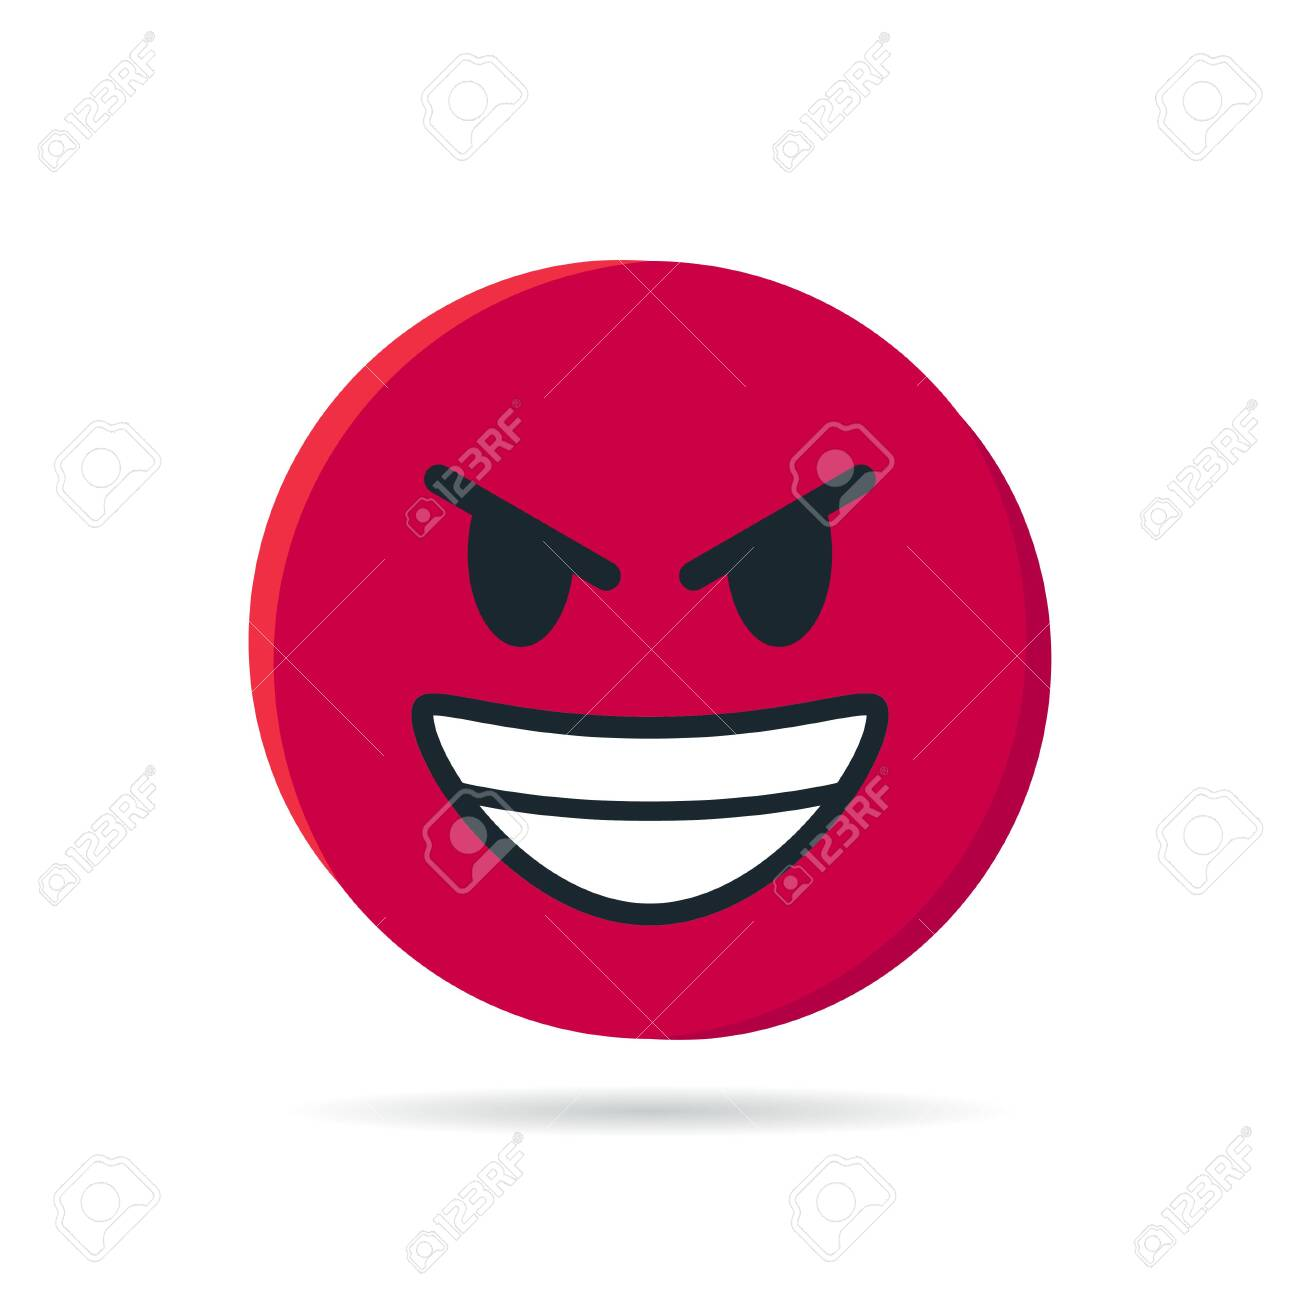 Round red emoji  Simple vector illustration of an angry face